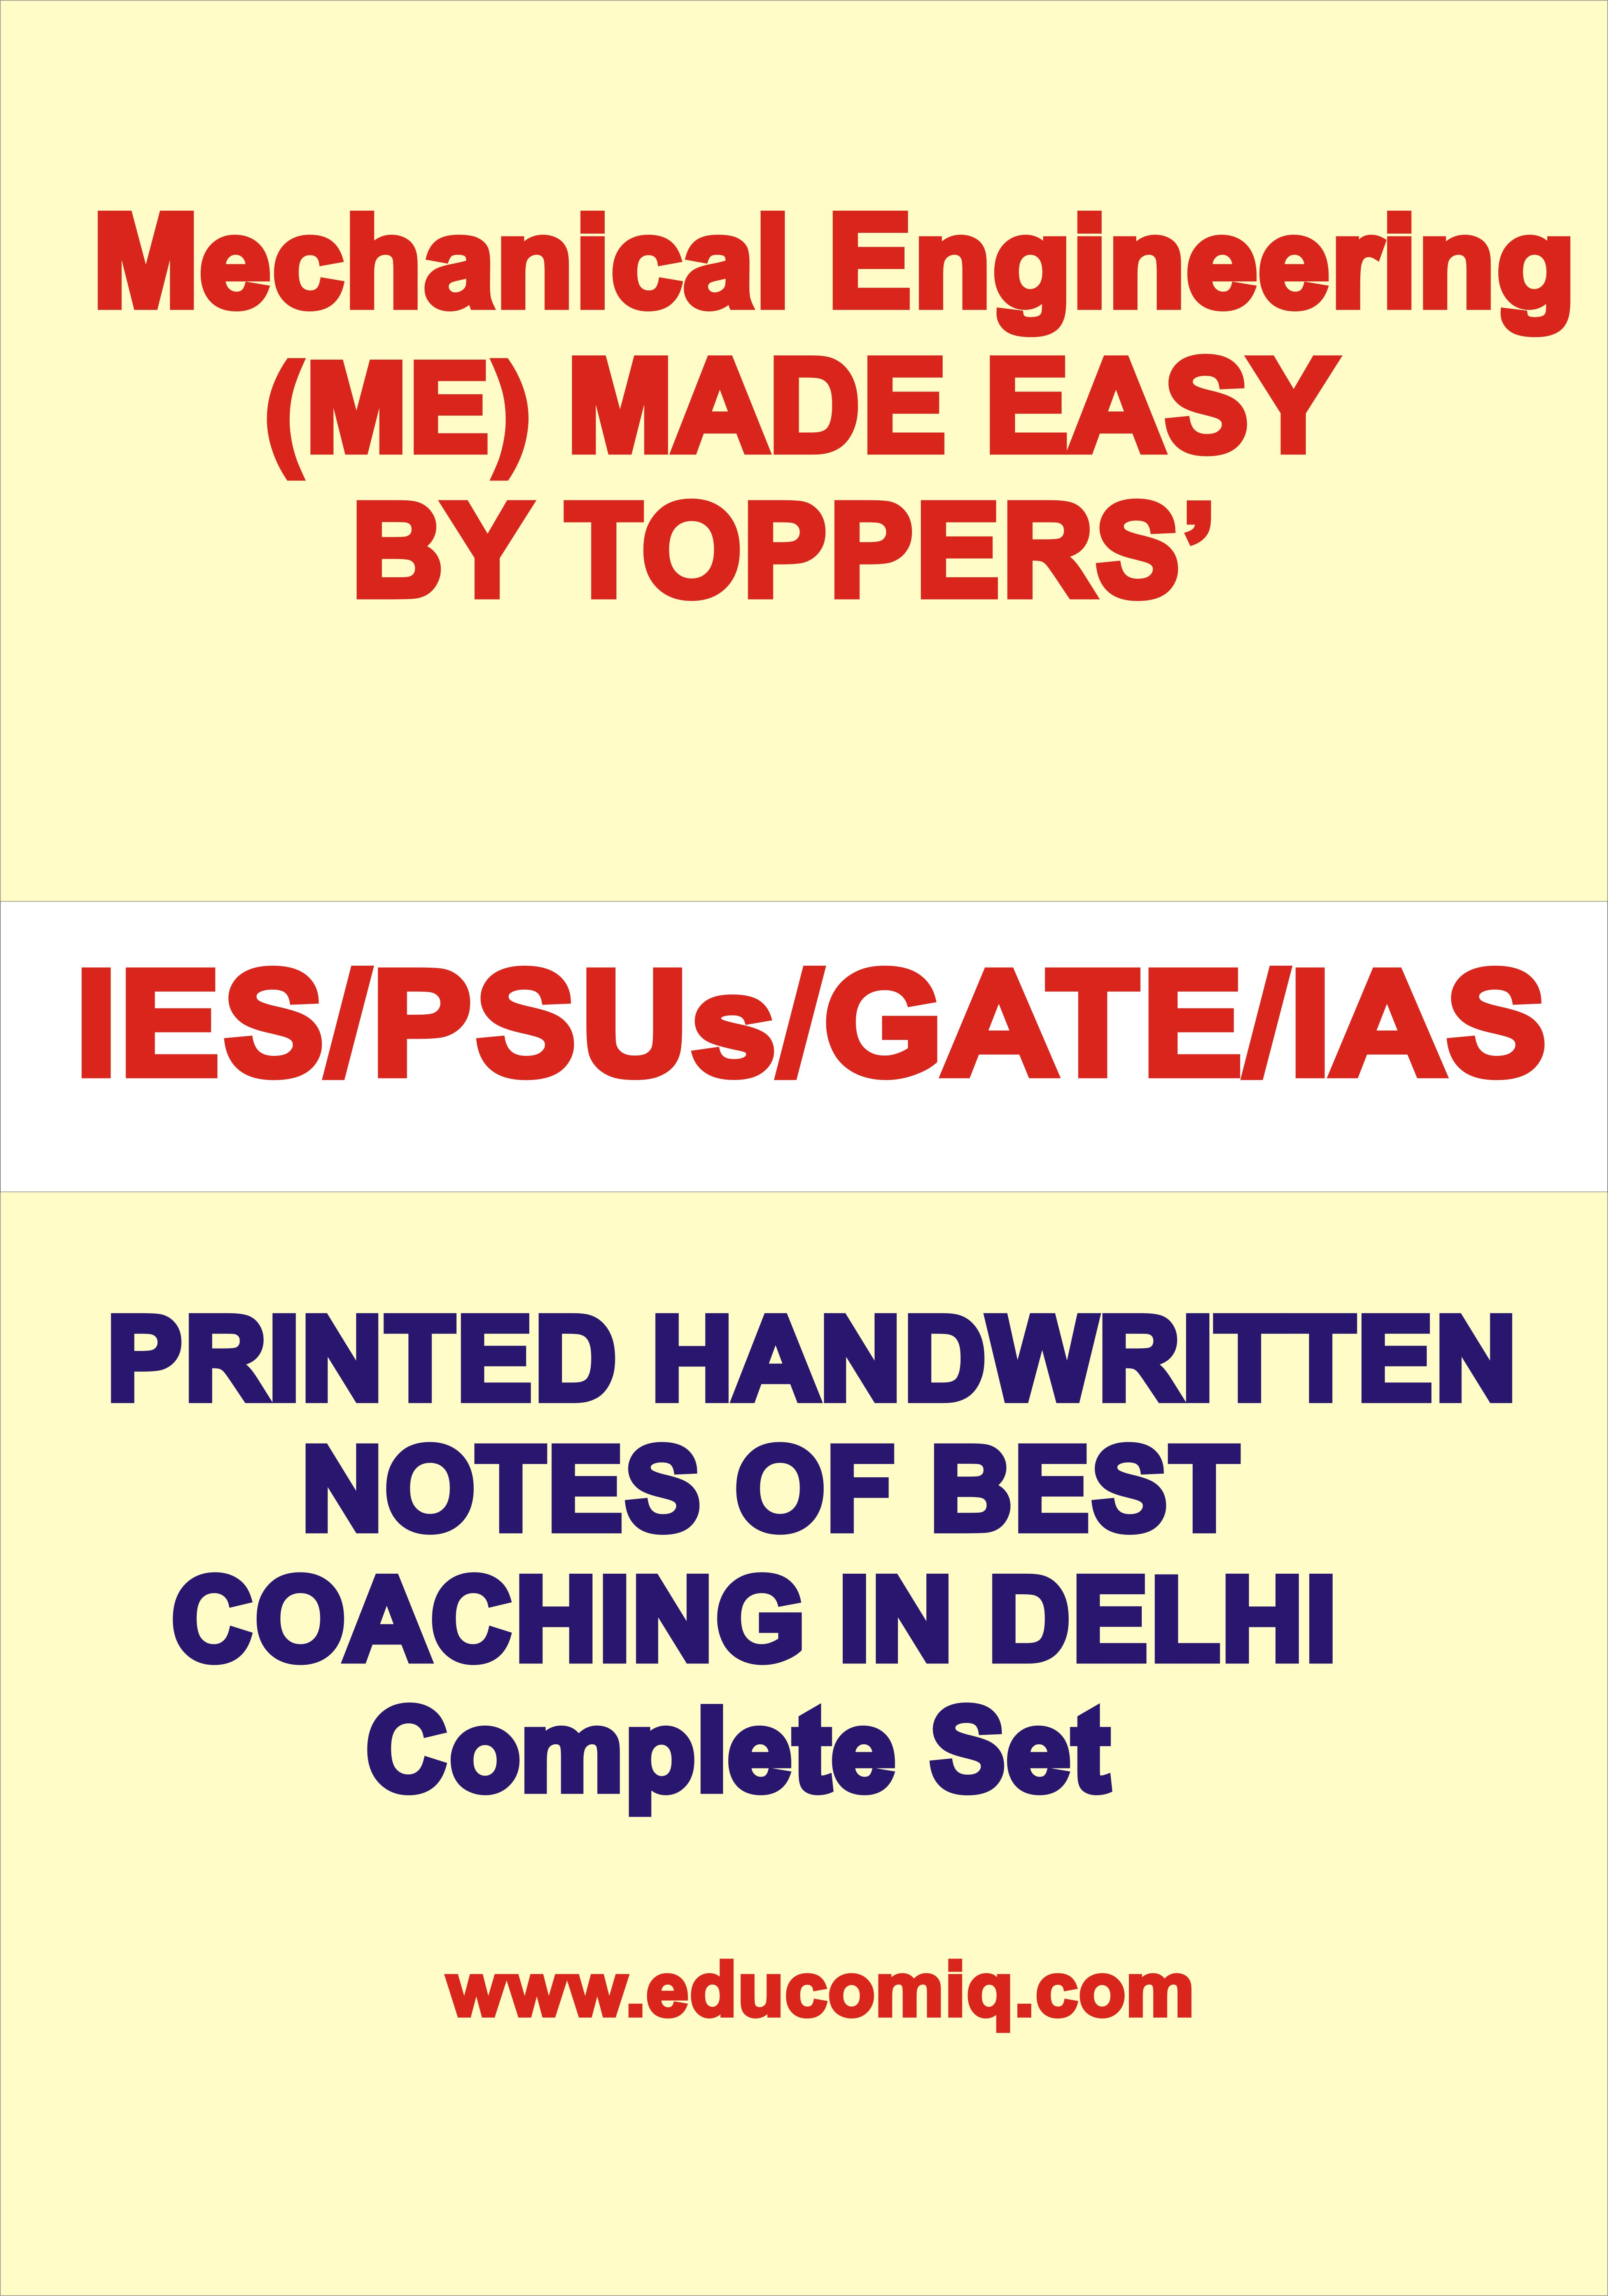 Handwritten Notes Made Easy Mechanical Engineering for IES, GATE, PSU